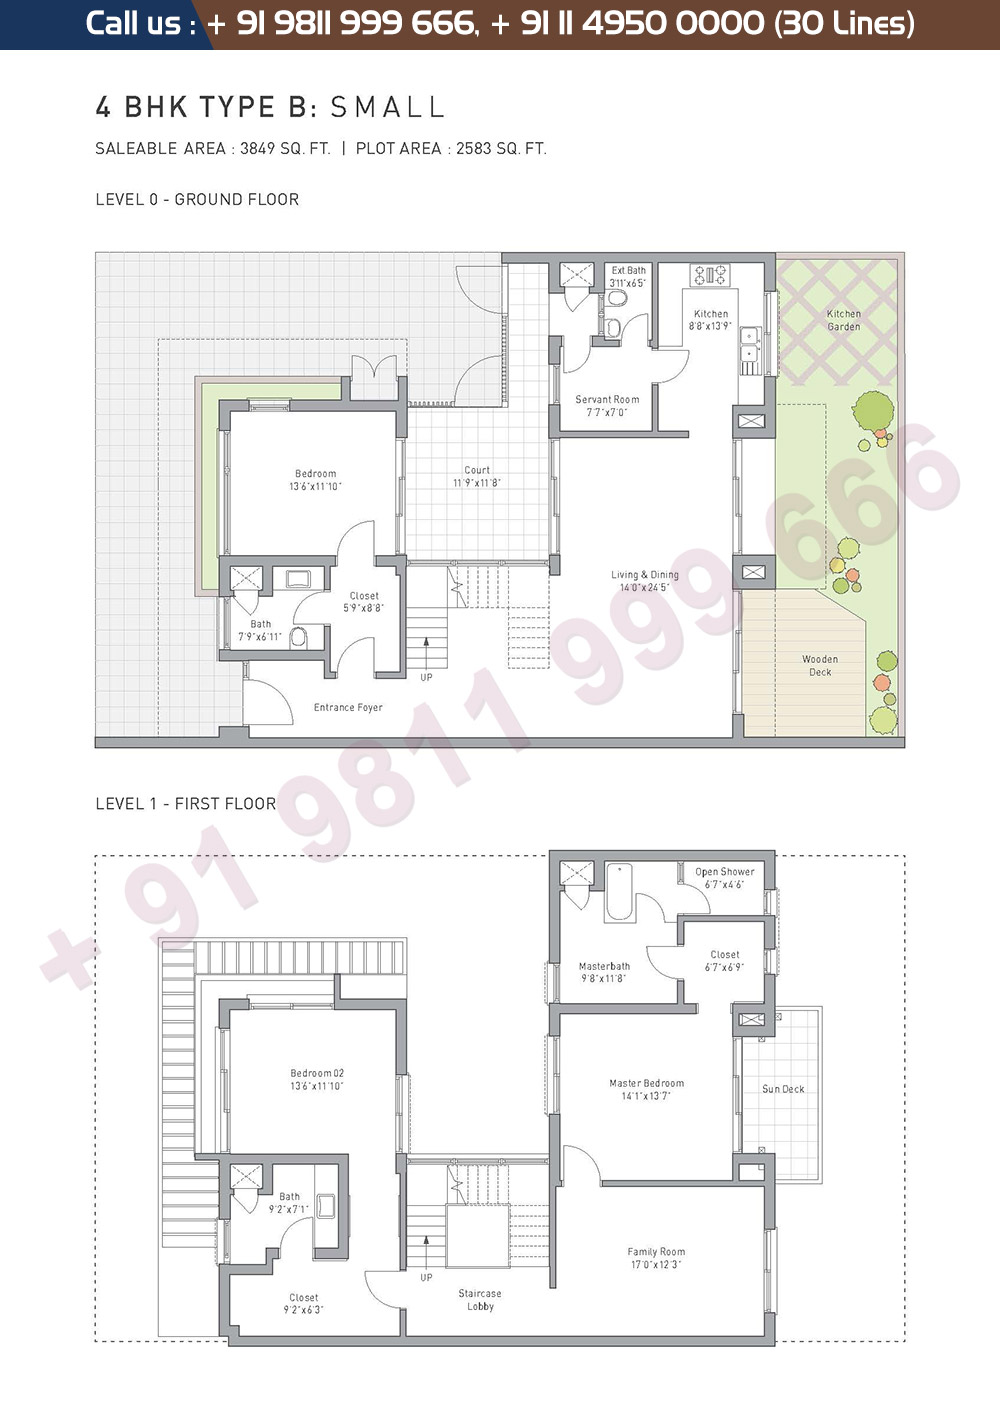 4 BHK Type B Small: 3849 Sq.Ft.